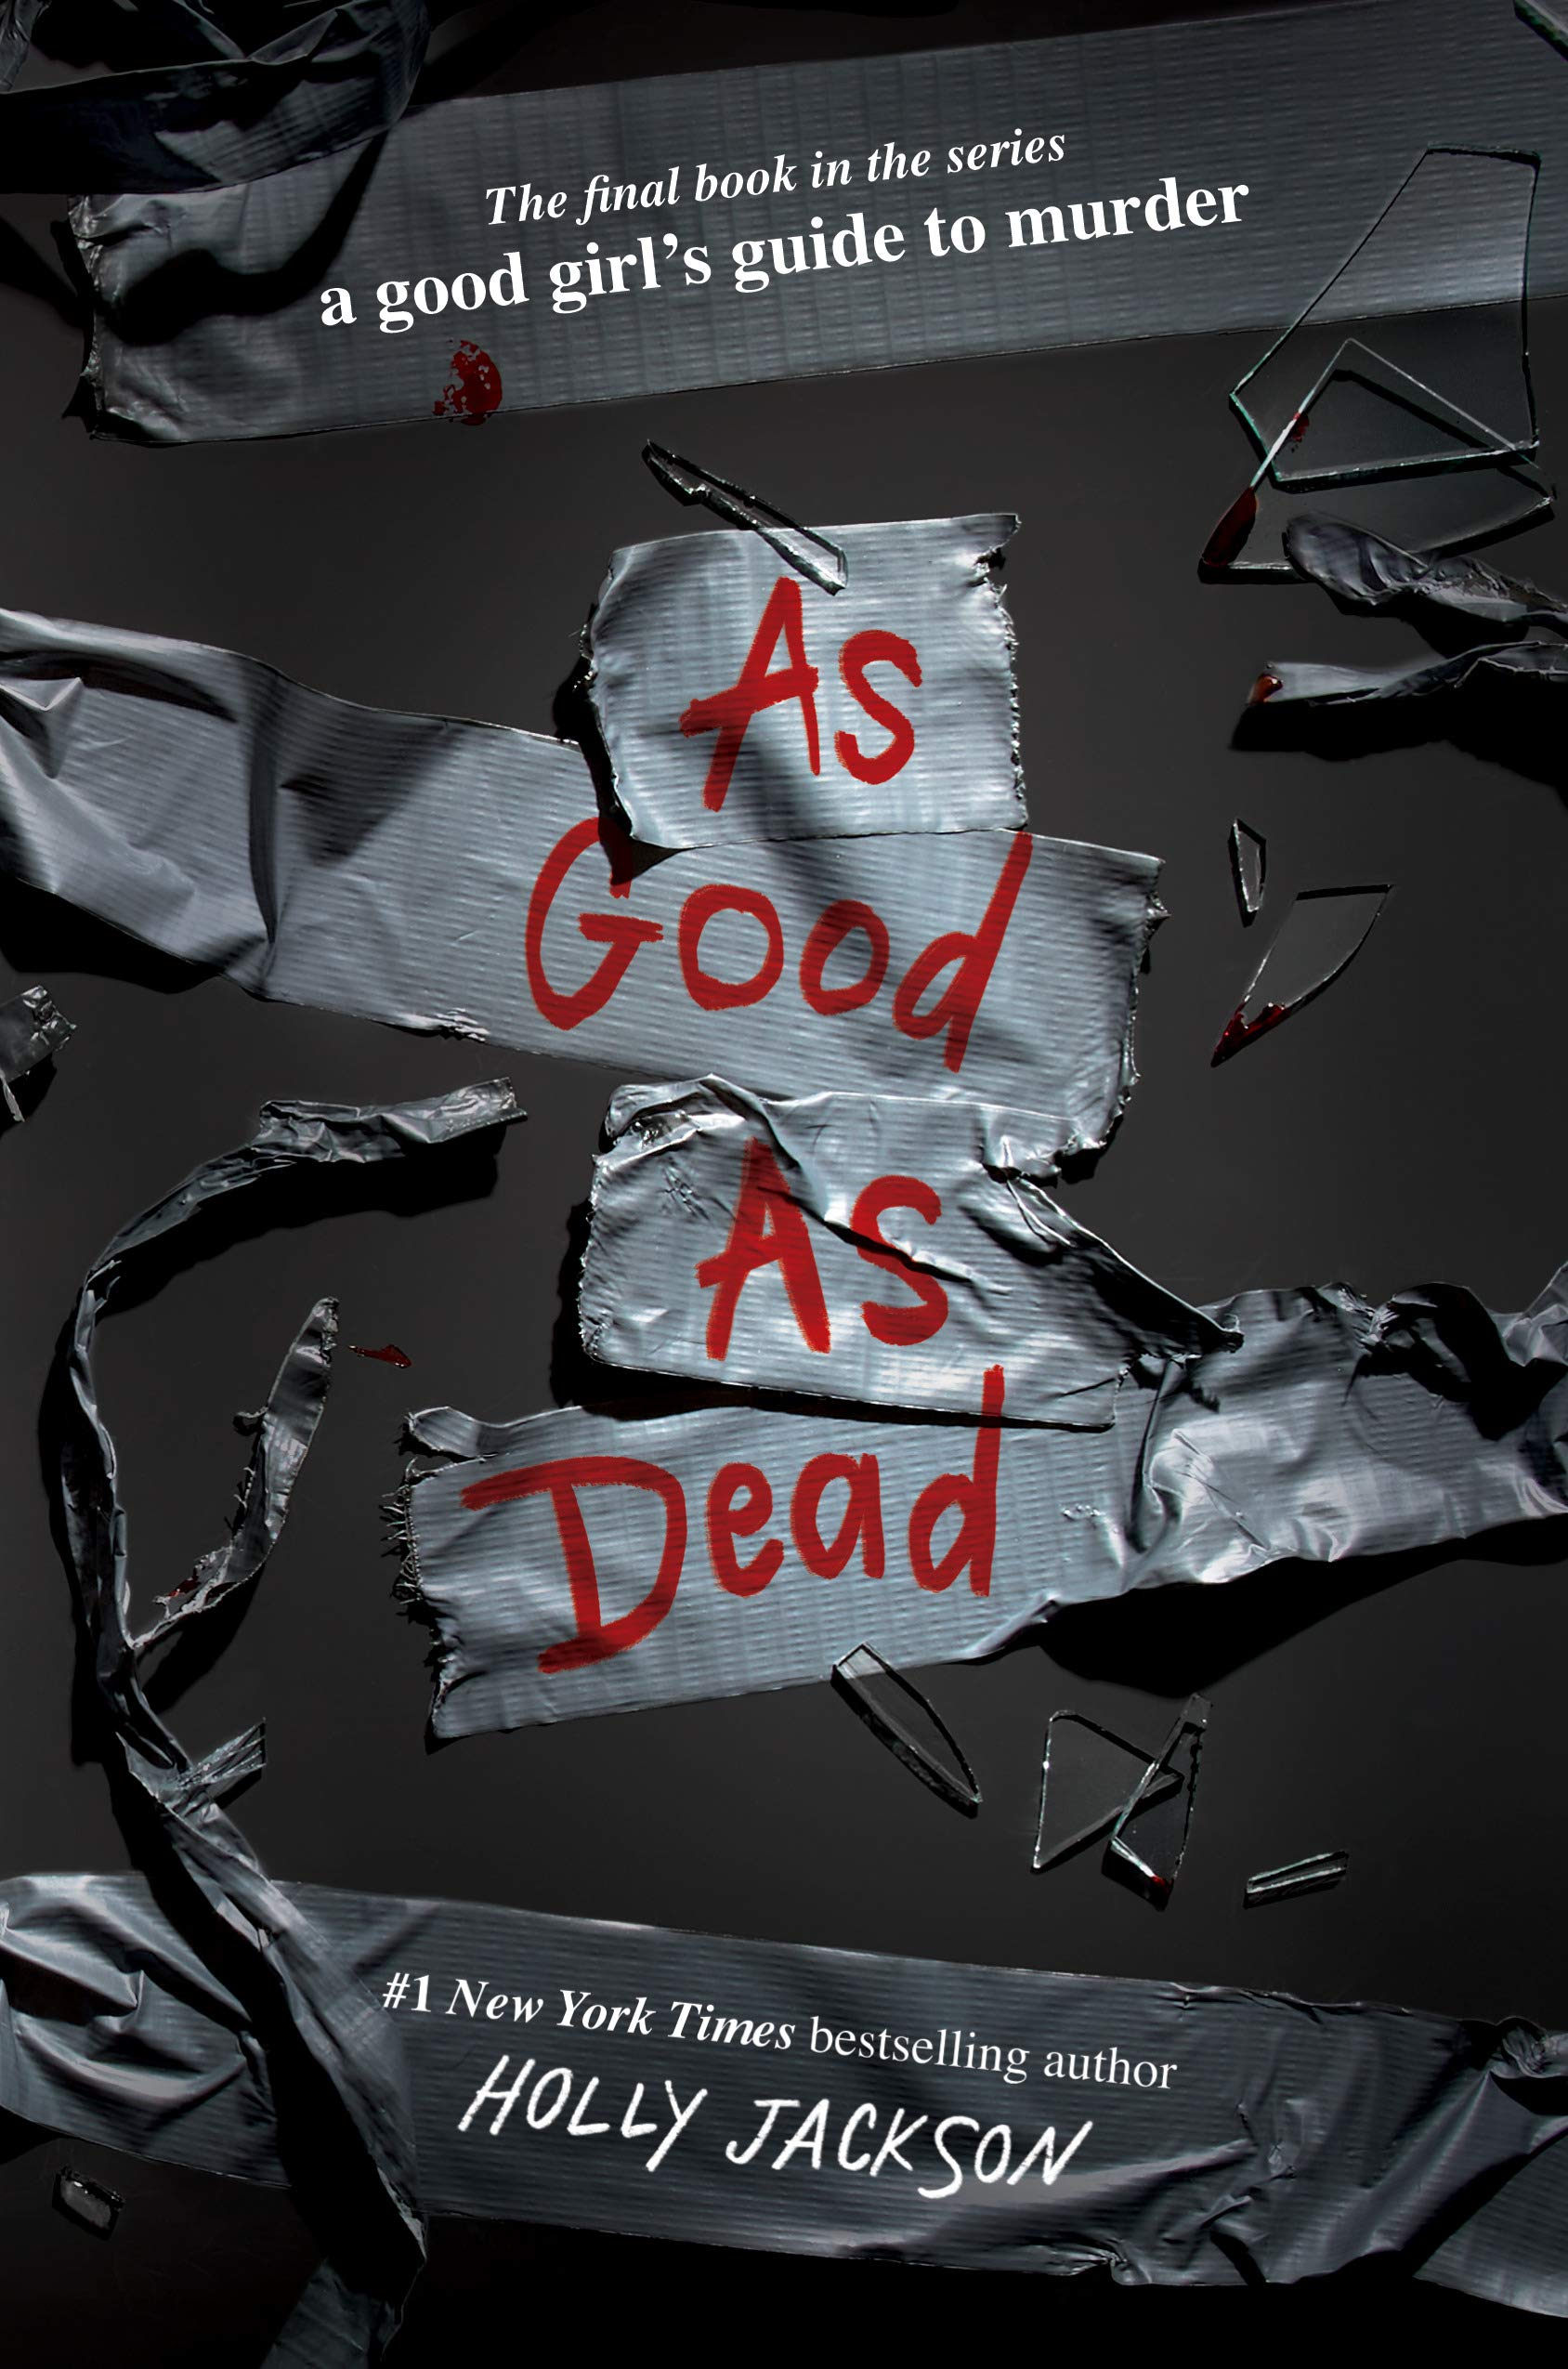 Amazon.com: As Good as Dead: The Finale to A Good Girl's Guide to Murder  (9780593379851): Jackson, Holly: Books